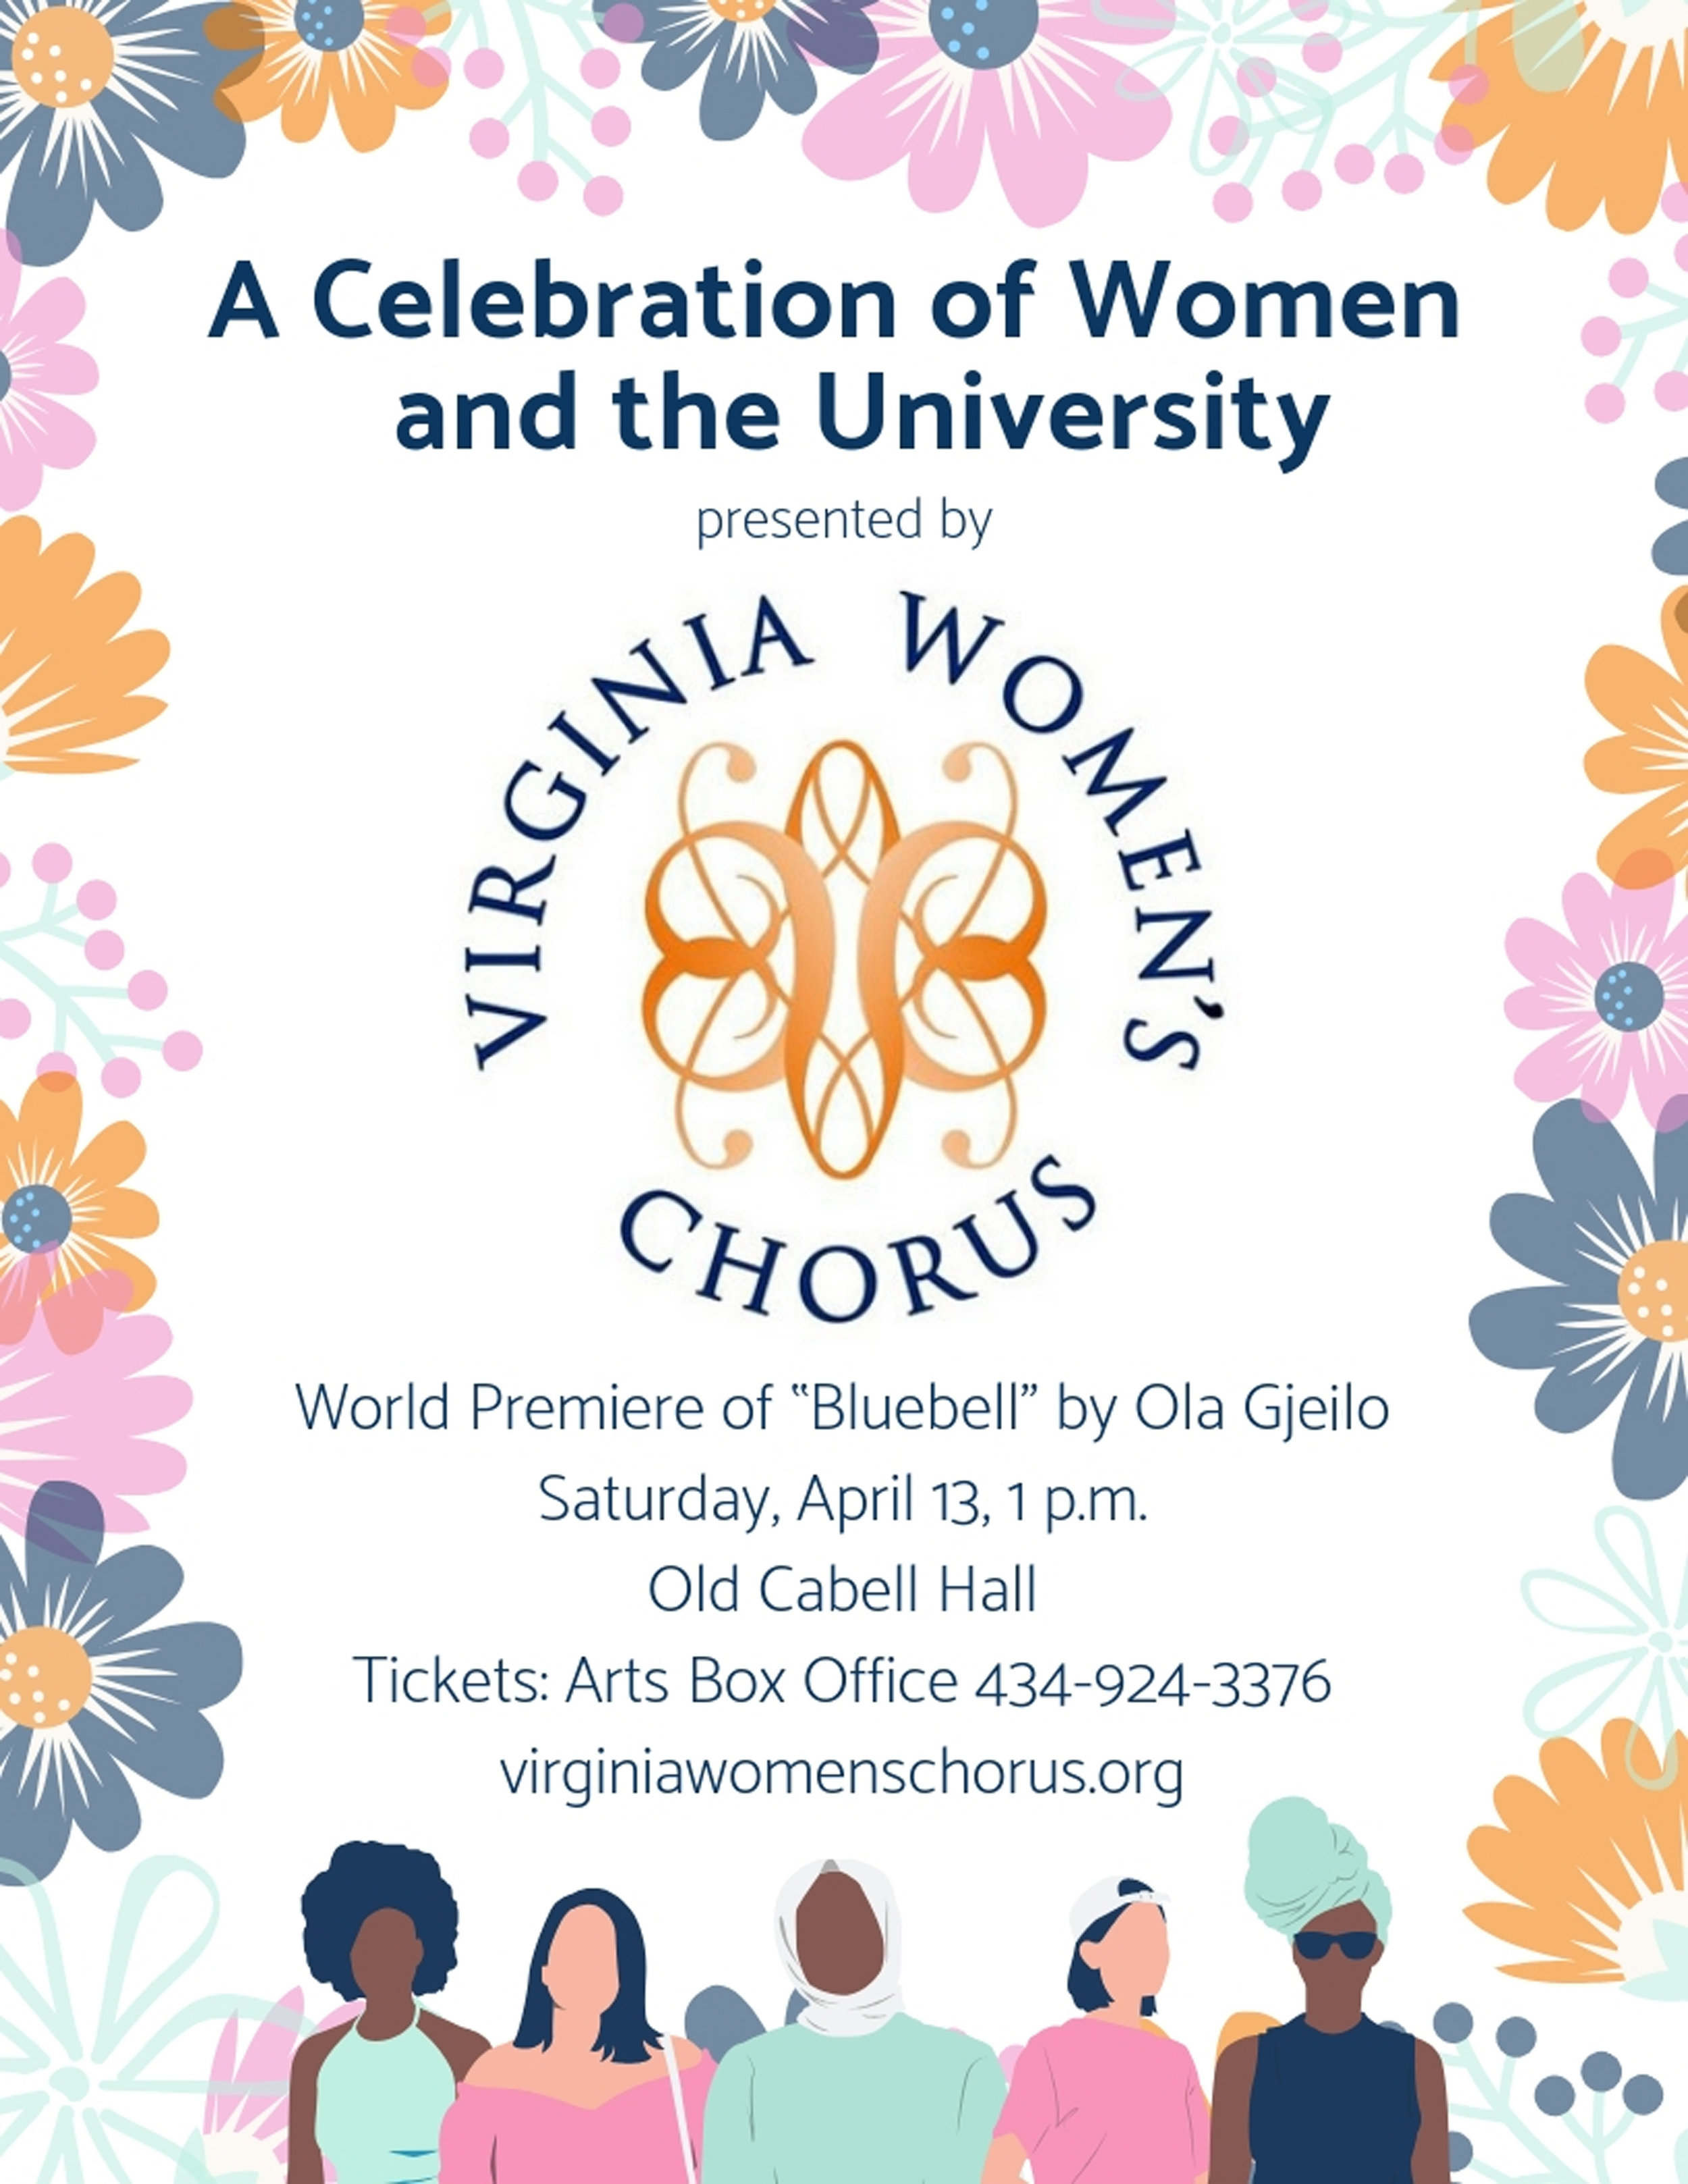 "Poster promoting the Virginia Women's Chorus's Spring 2019 concert, ""A Celebration of Women and the University."" The concert features the world premiere of ""Bluebell"" by Ola Gjeilo and takes place Saturday, April 13, 2019 at 1 PM in Old Cabell Hall. The poster has a generic image of a diverse group of women along the bottom and flowers along the other borders."